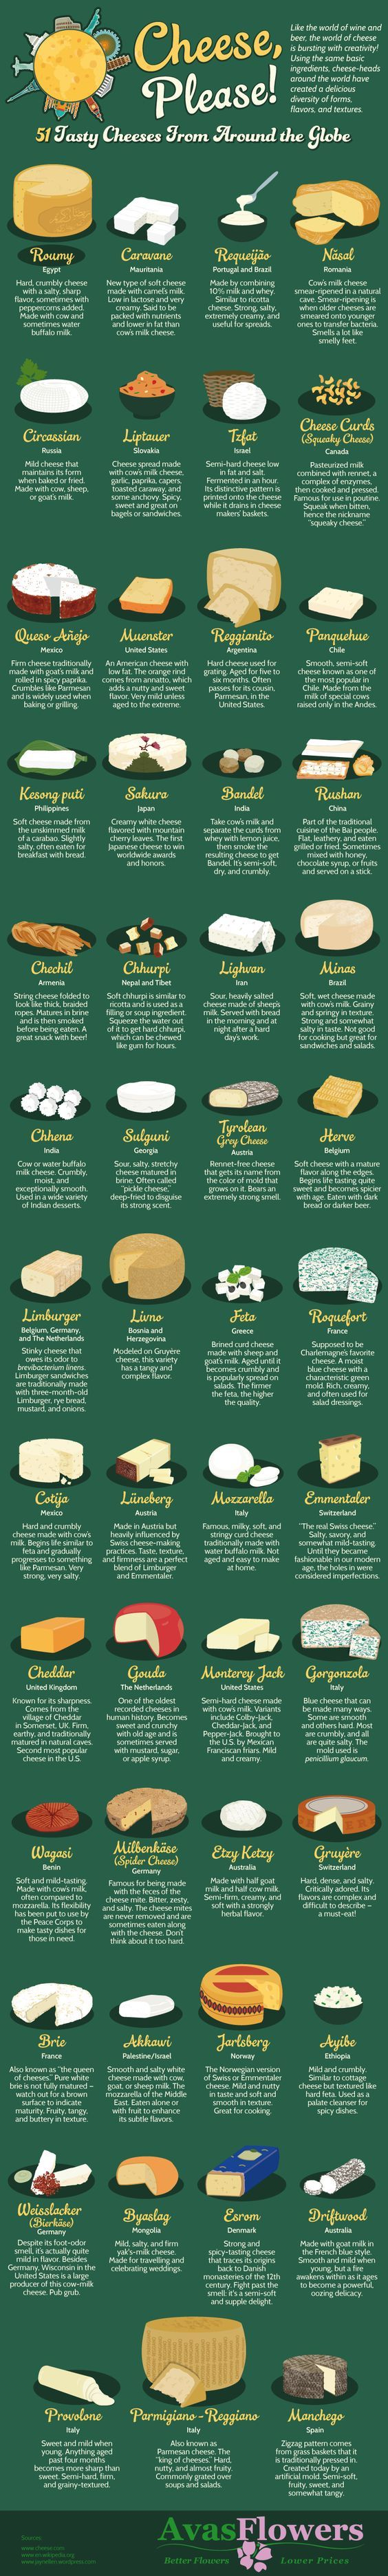 Queijo por favor! 51 saborosos queijos de todo o mundo - Avasflowers.net - Infográfico: ... #Wine #WineMaking #Cheese #CheesMaking #Tasting #Recipe